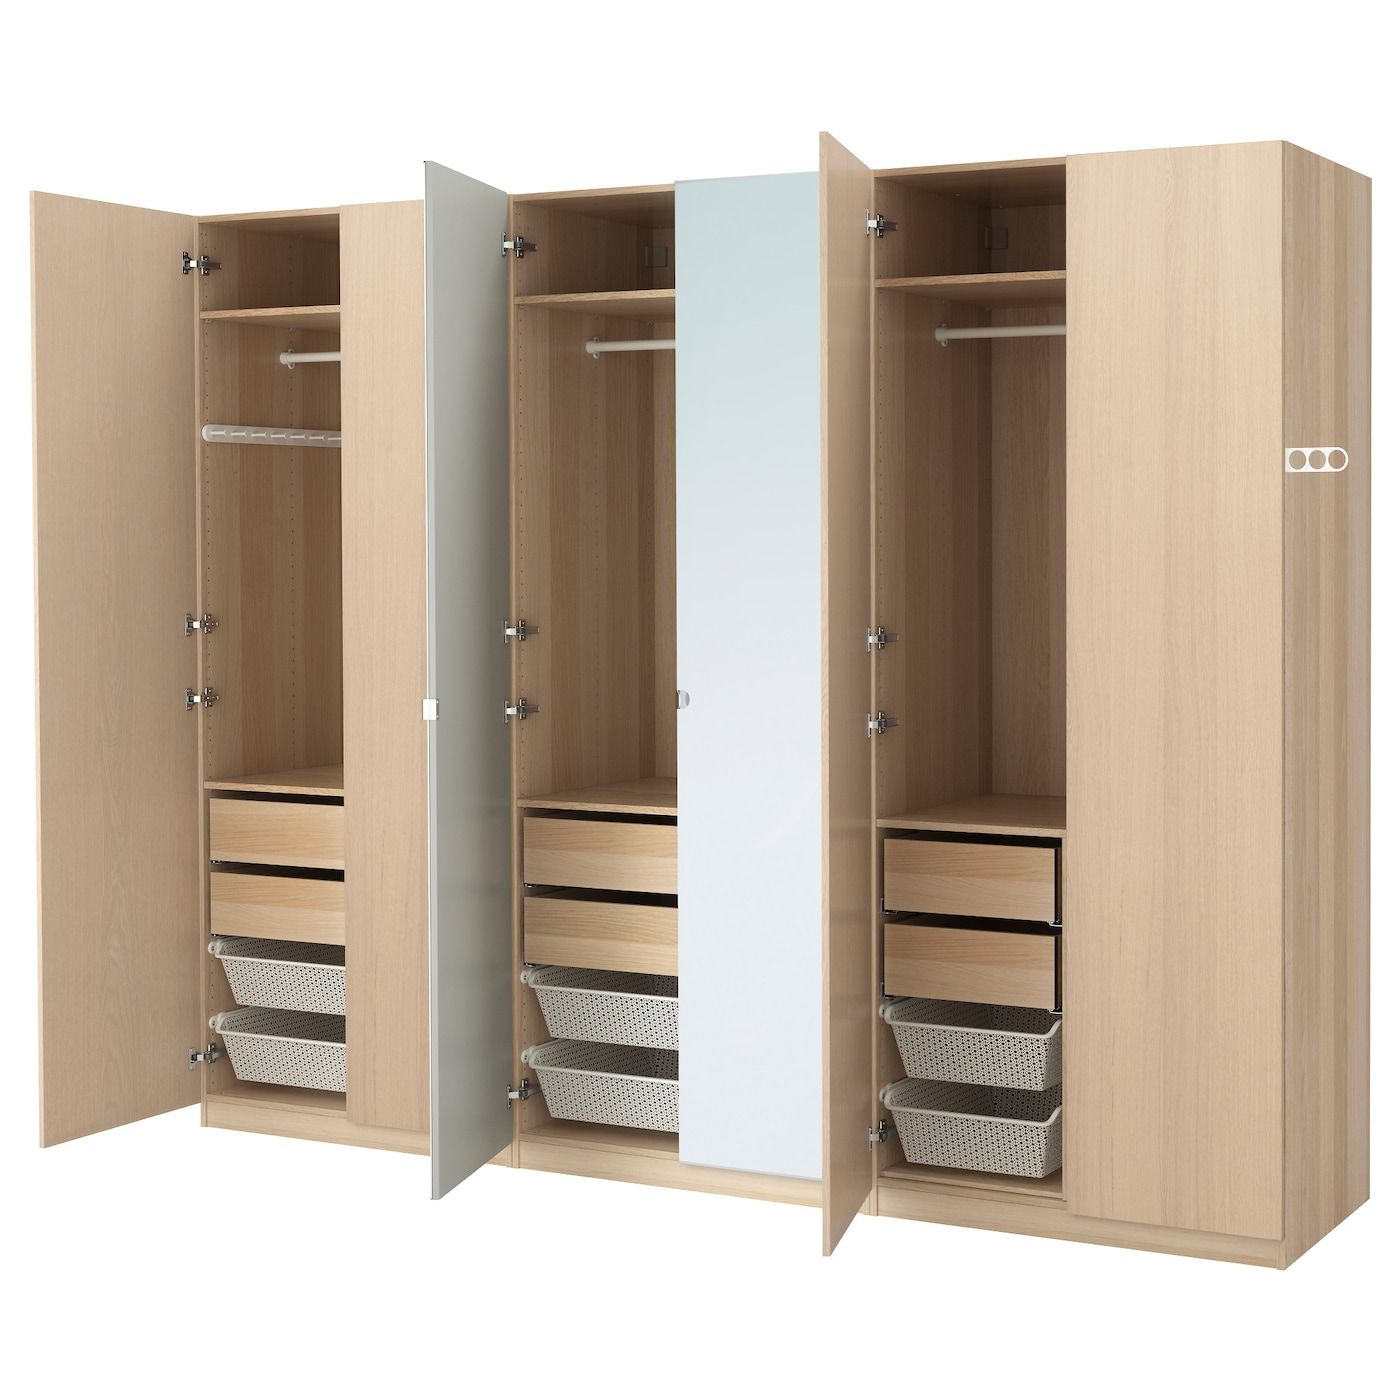 pax wardrobe white stained oak effect nexus vikedal 300x60x236 cm ikea. Black Bedroom Furniture Sets. Home Design Ideas